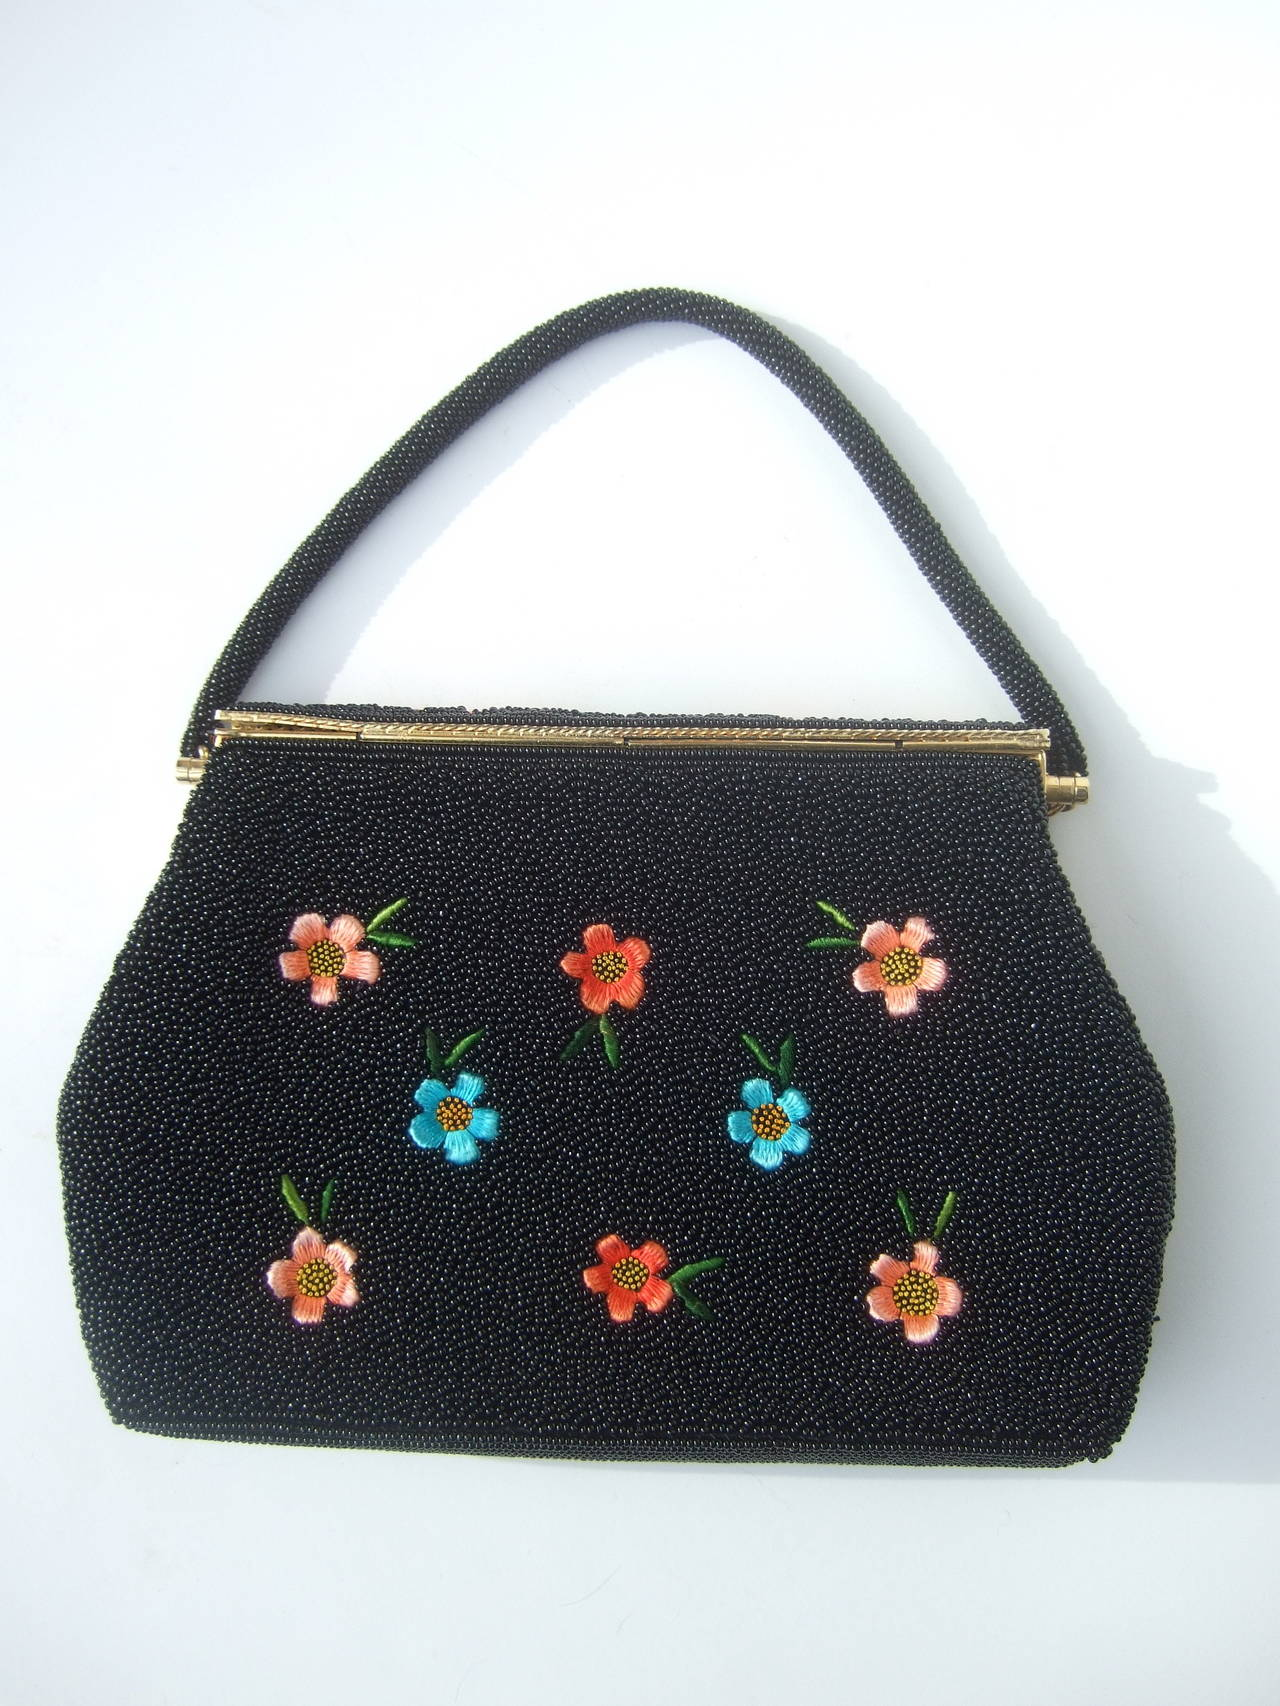 Exquiste Black Glass Beaded Embroidered Evening Bag c 1960 5